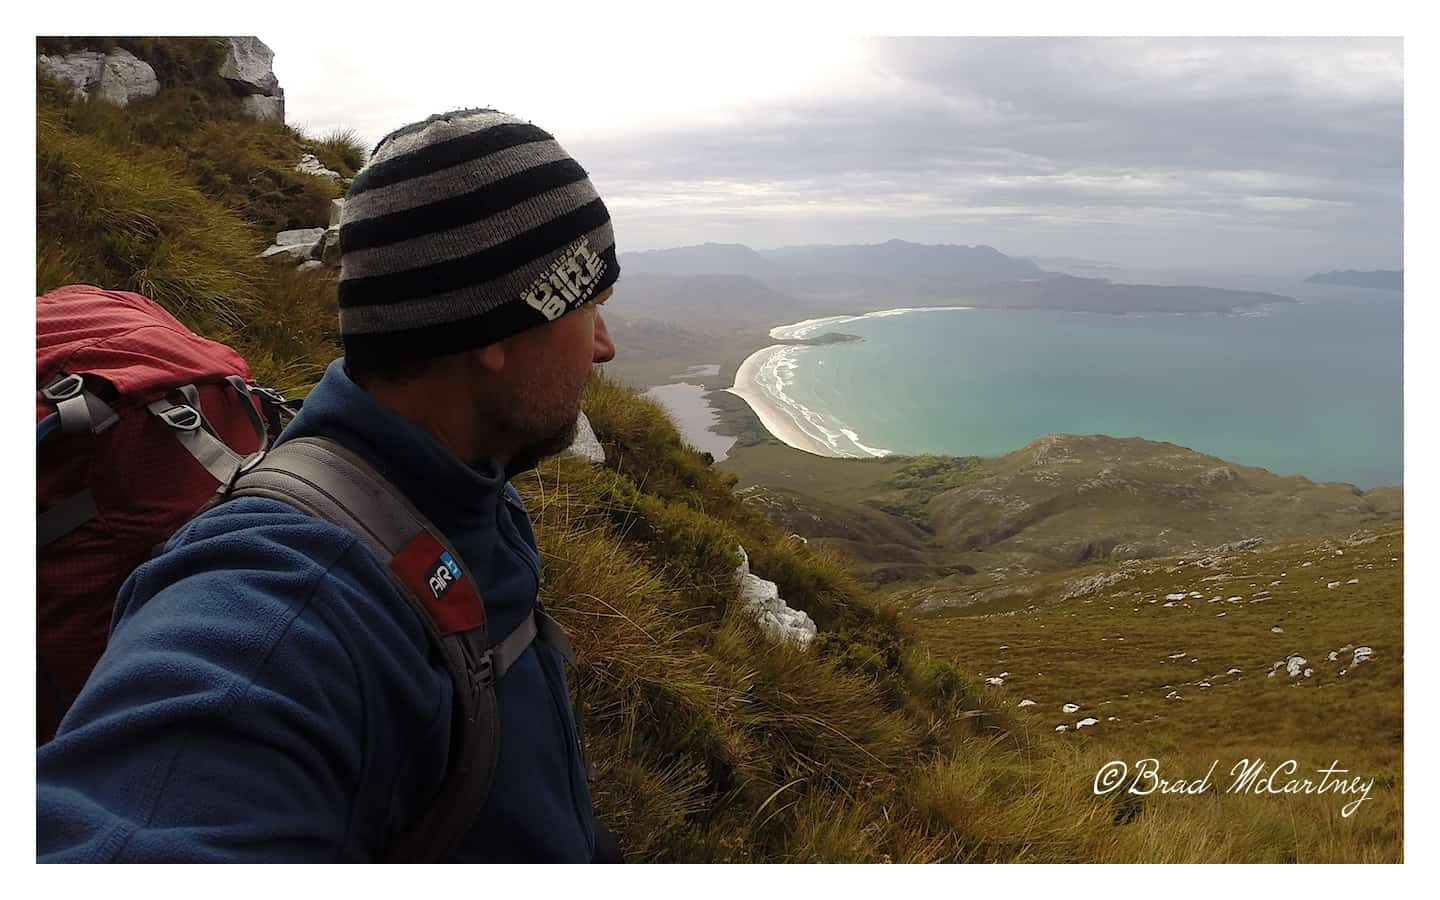 Looking out over Cox Bight on the south coast track